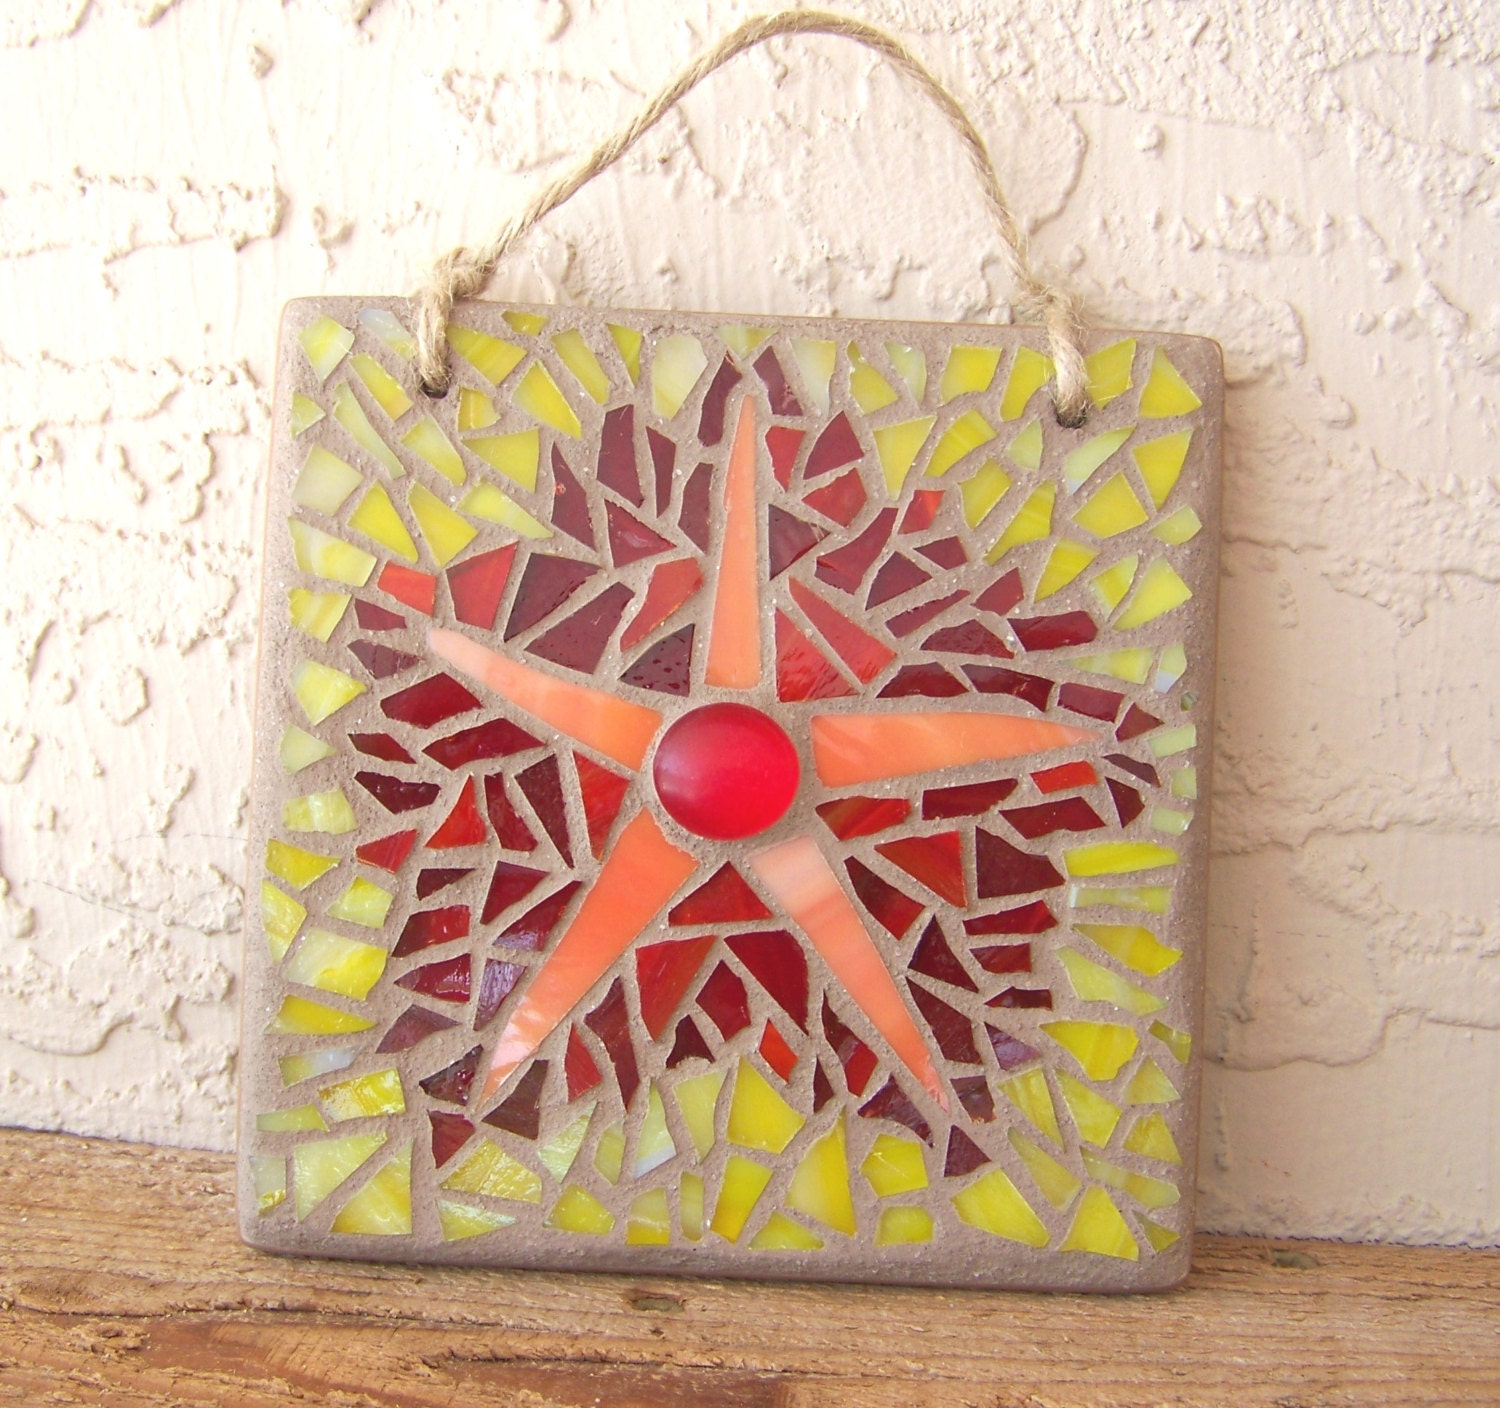 Mosaic Art Stained Glass Mosaic Wall Hanging Star Wall Decor